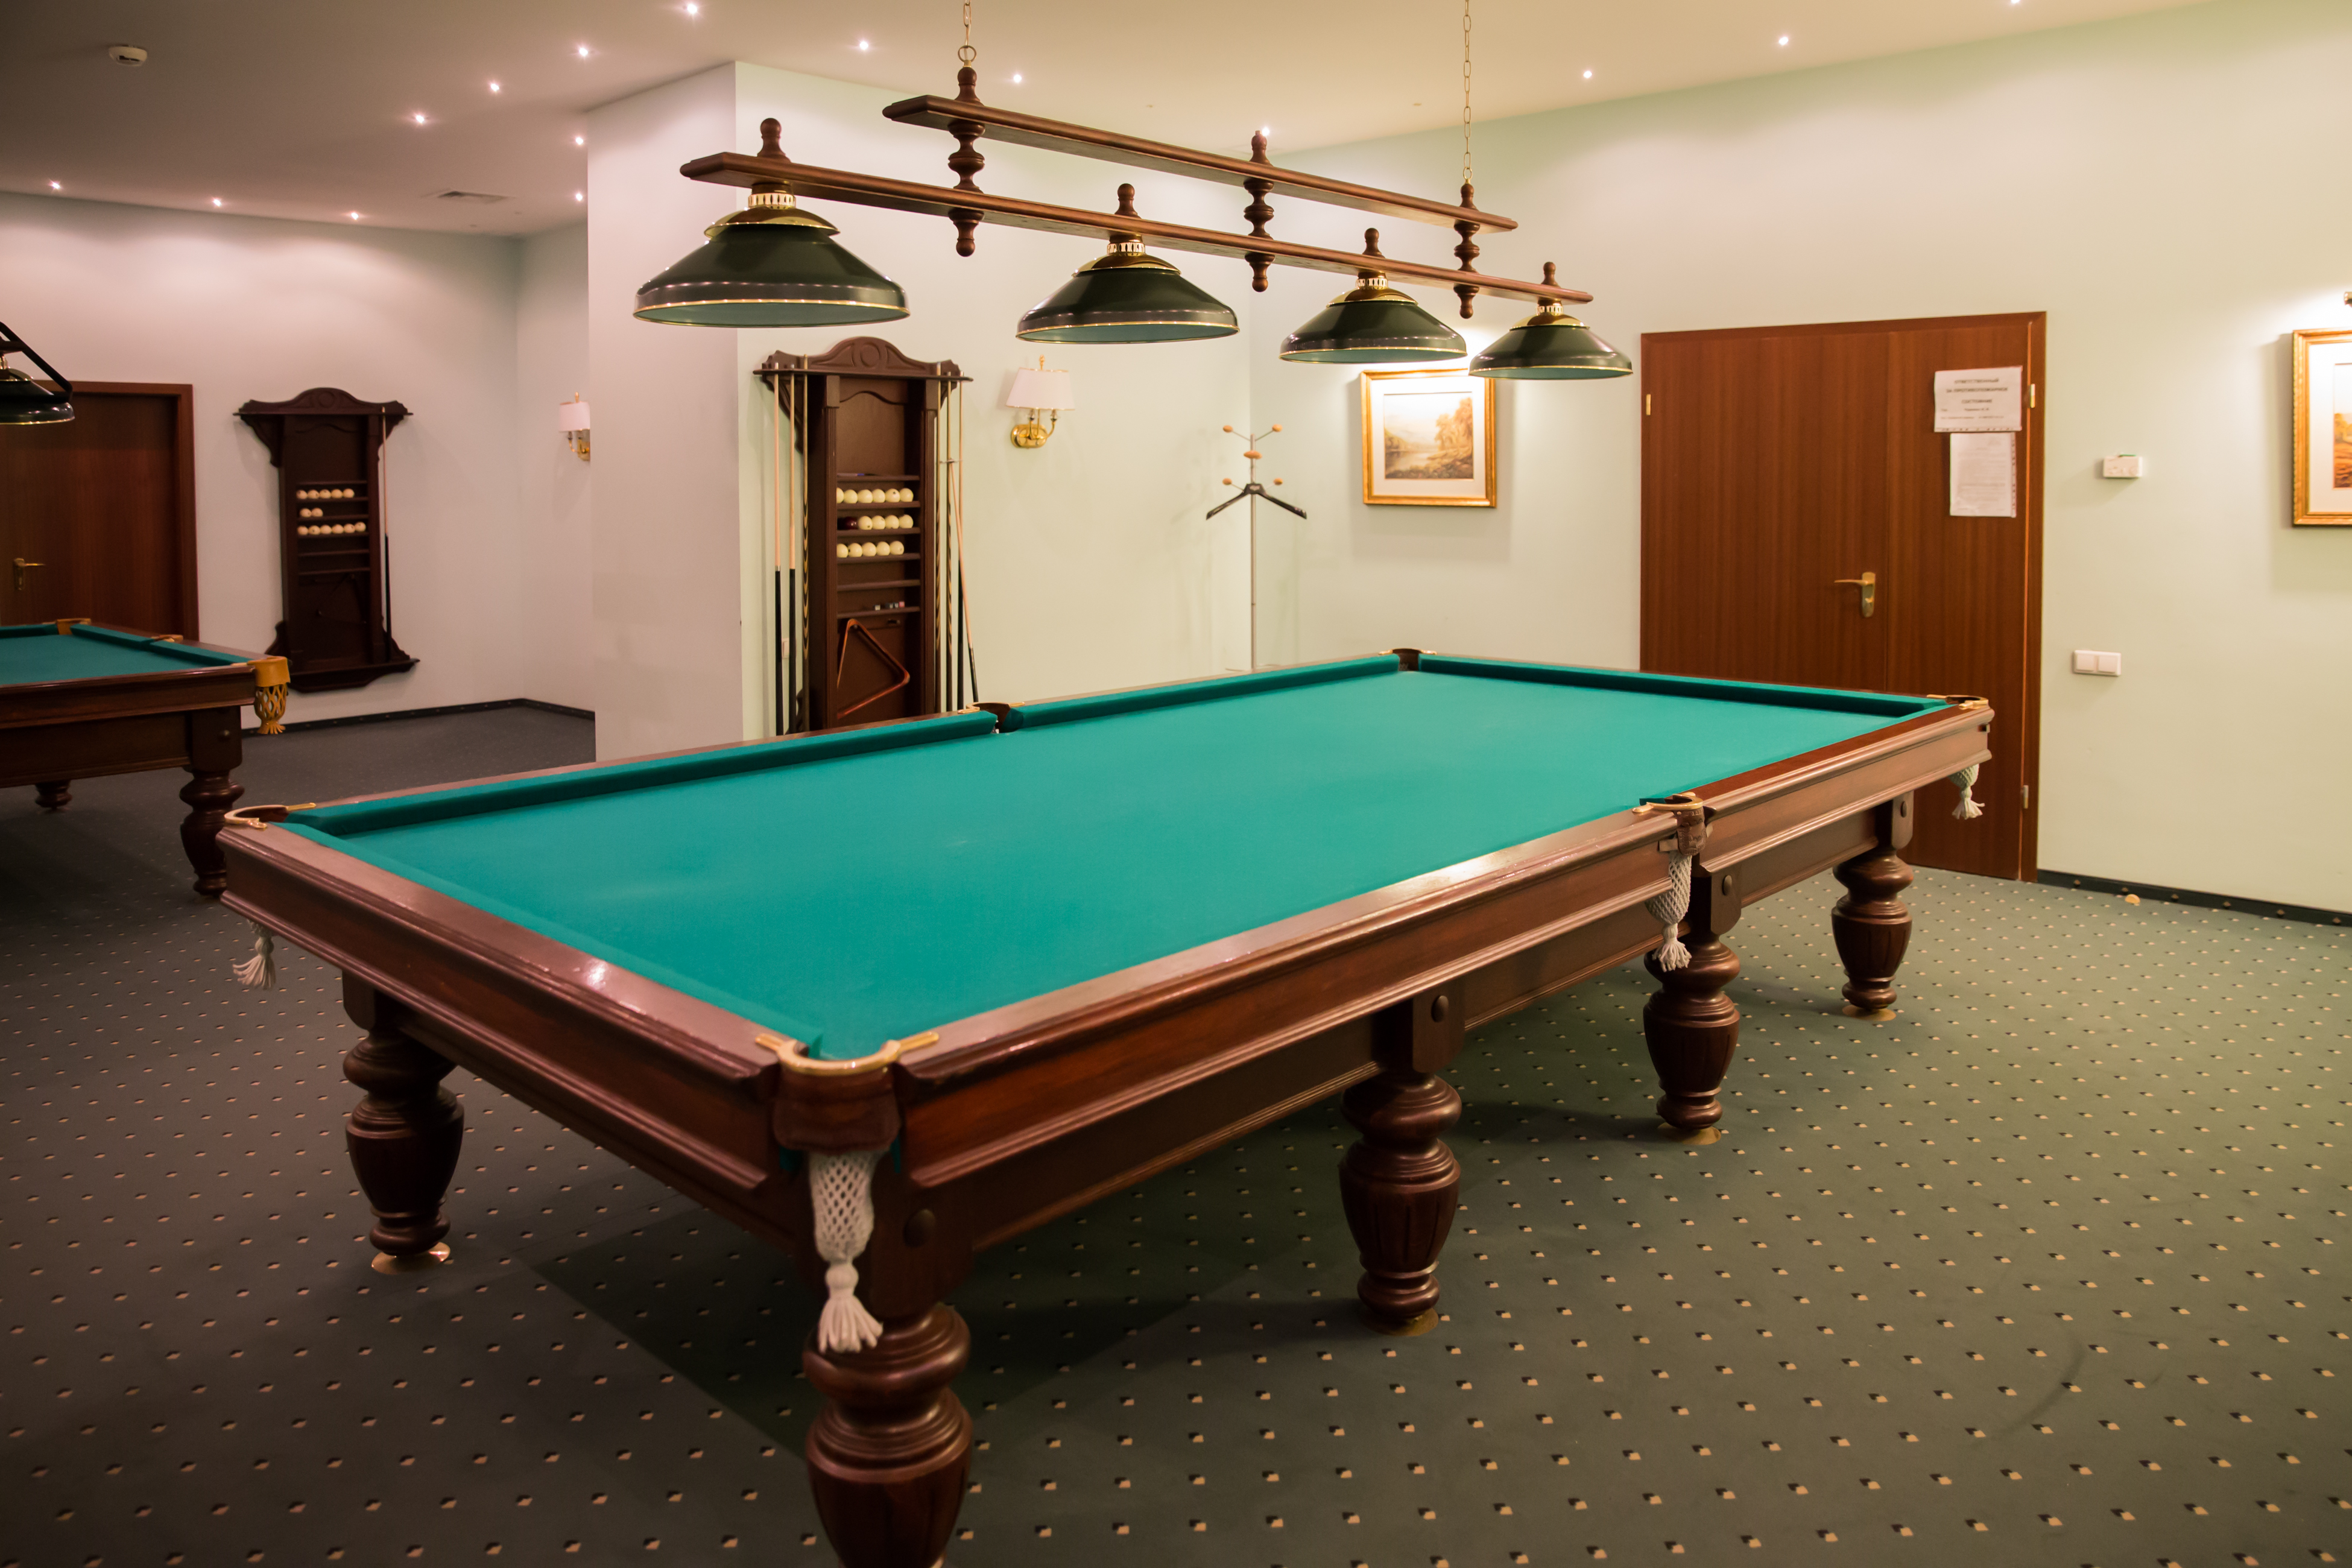 Pool Table Repair Services Pool Table Company Pool Table Service - How much room for a pool table